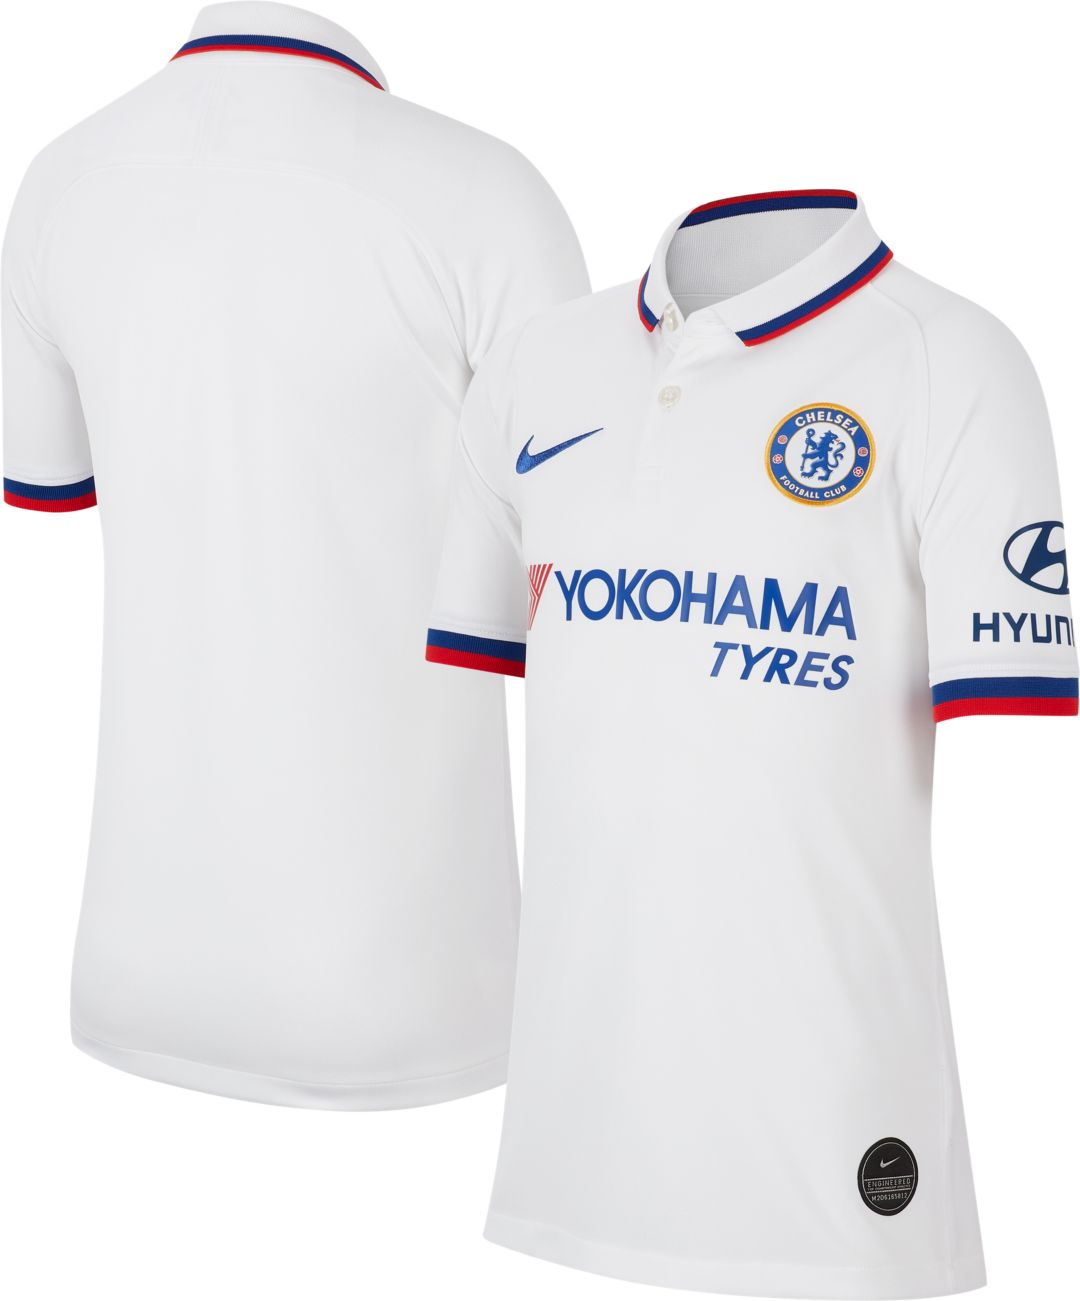 innovative design c6cce beded Nike Youth Chelsea FC '19 Breathe Stadium Away Replica Jersey